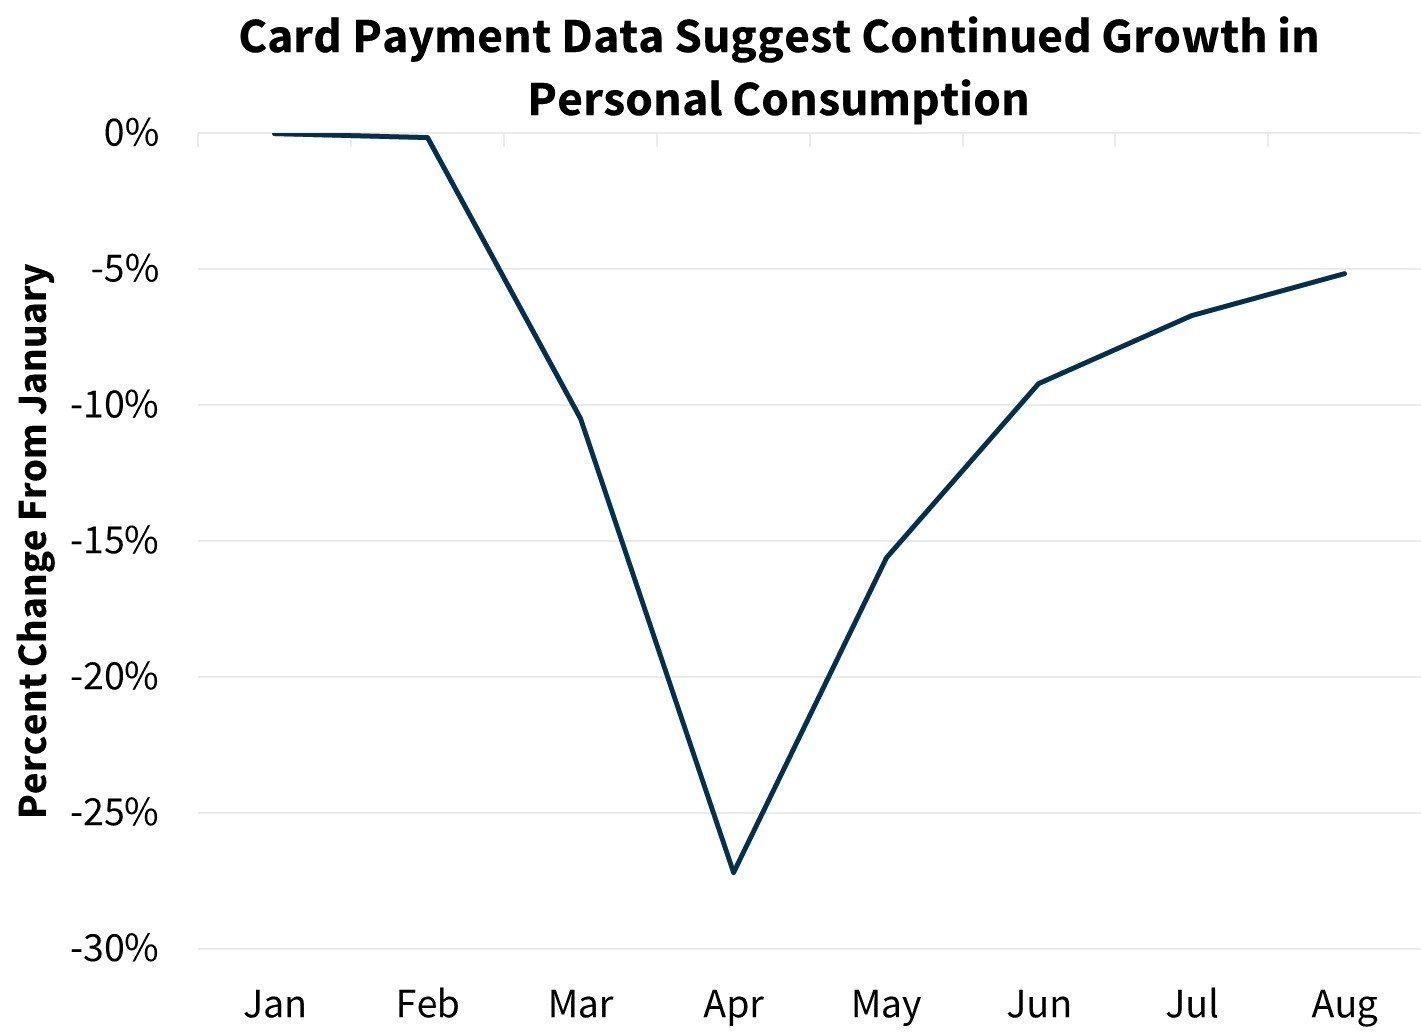 Card Payment Data Suggest Continued Growth in Personal Consumption